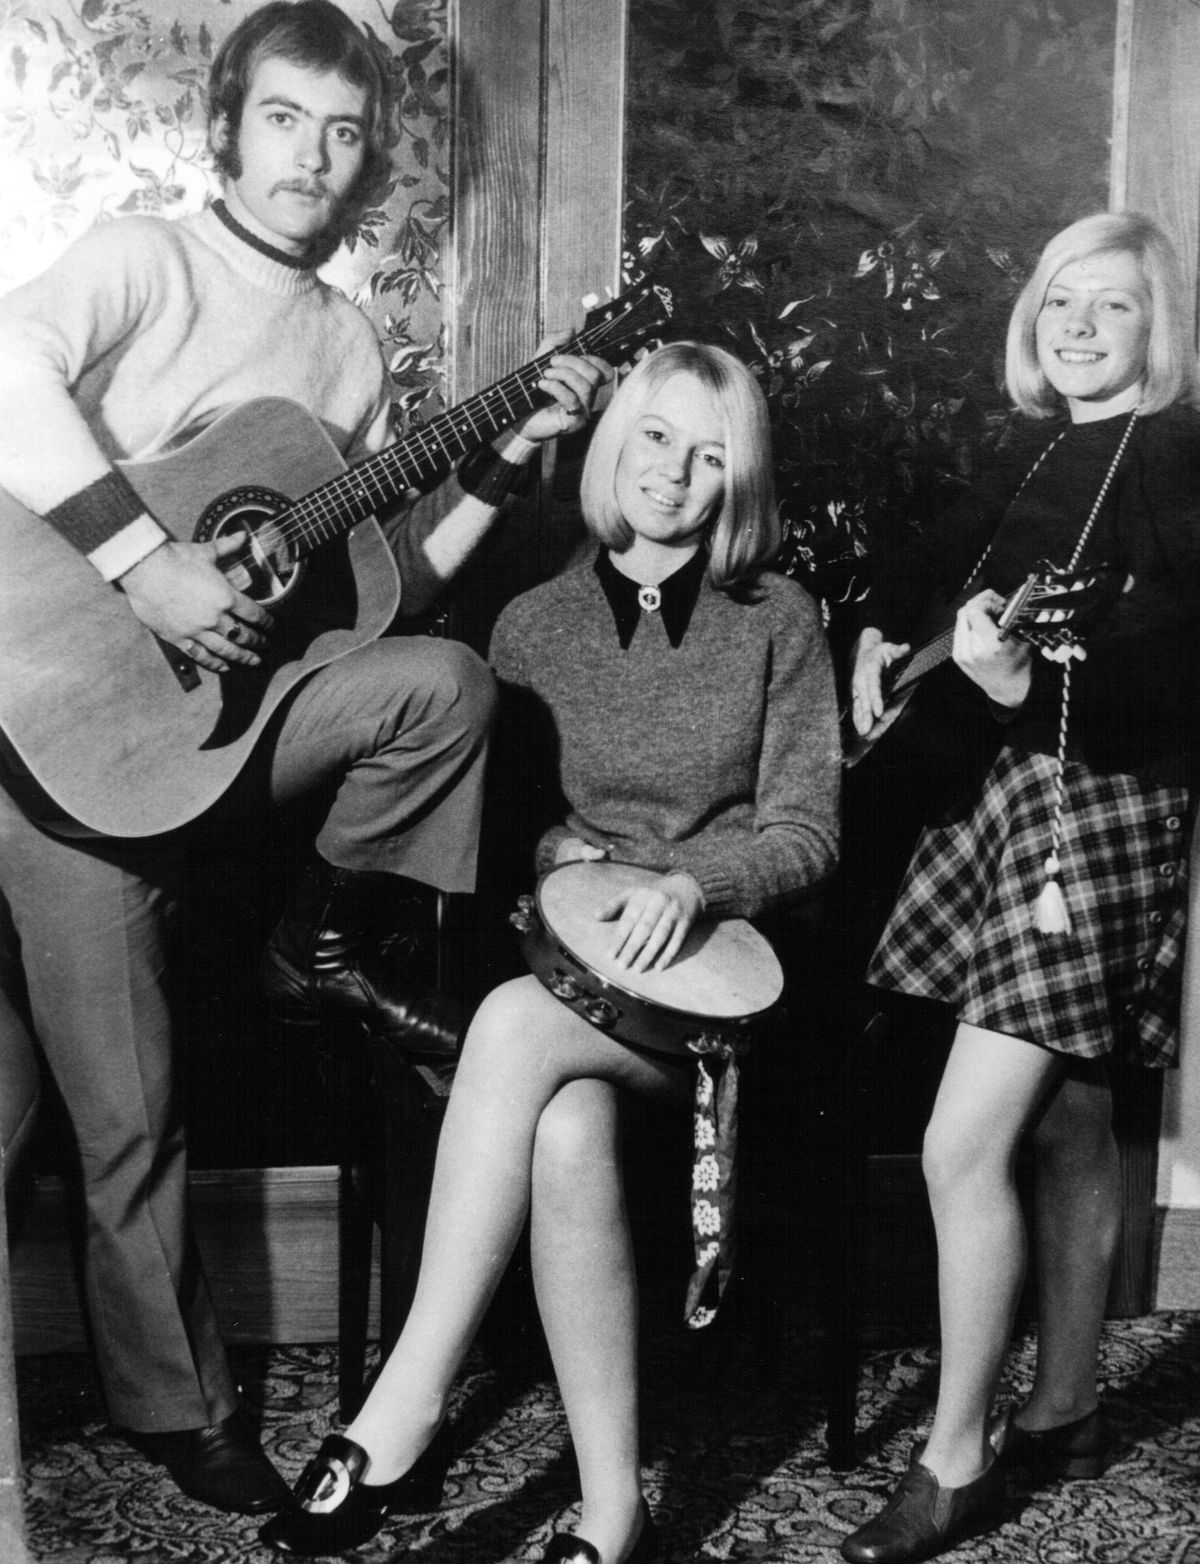 Music was a running thread in his young life – here he is in a folk trio called Pennywood in 1970.